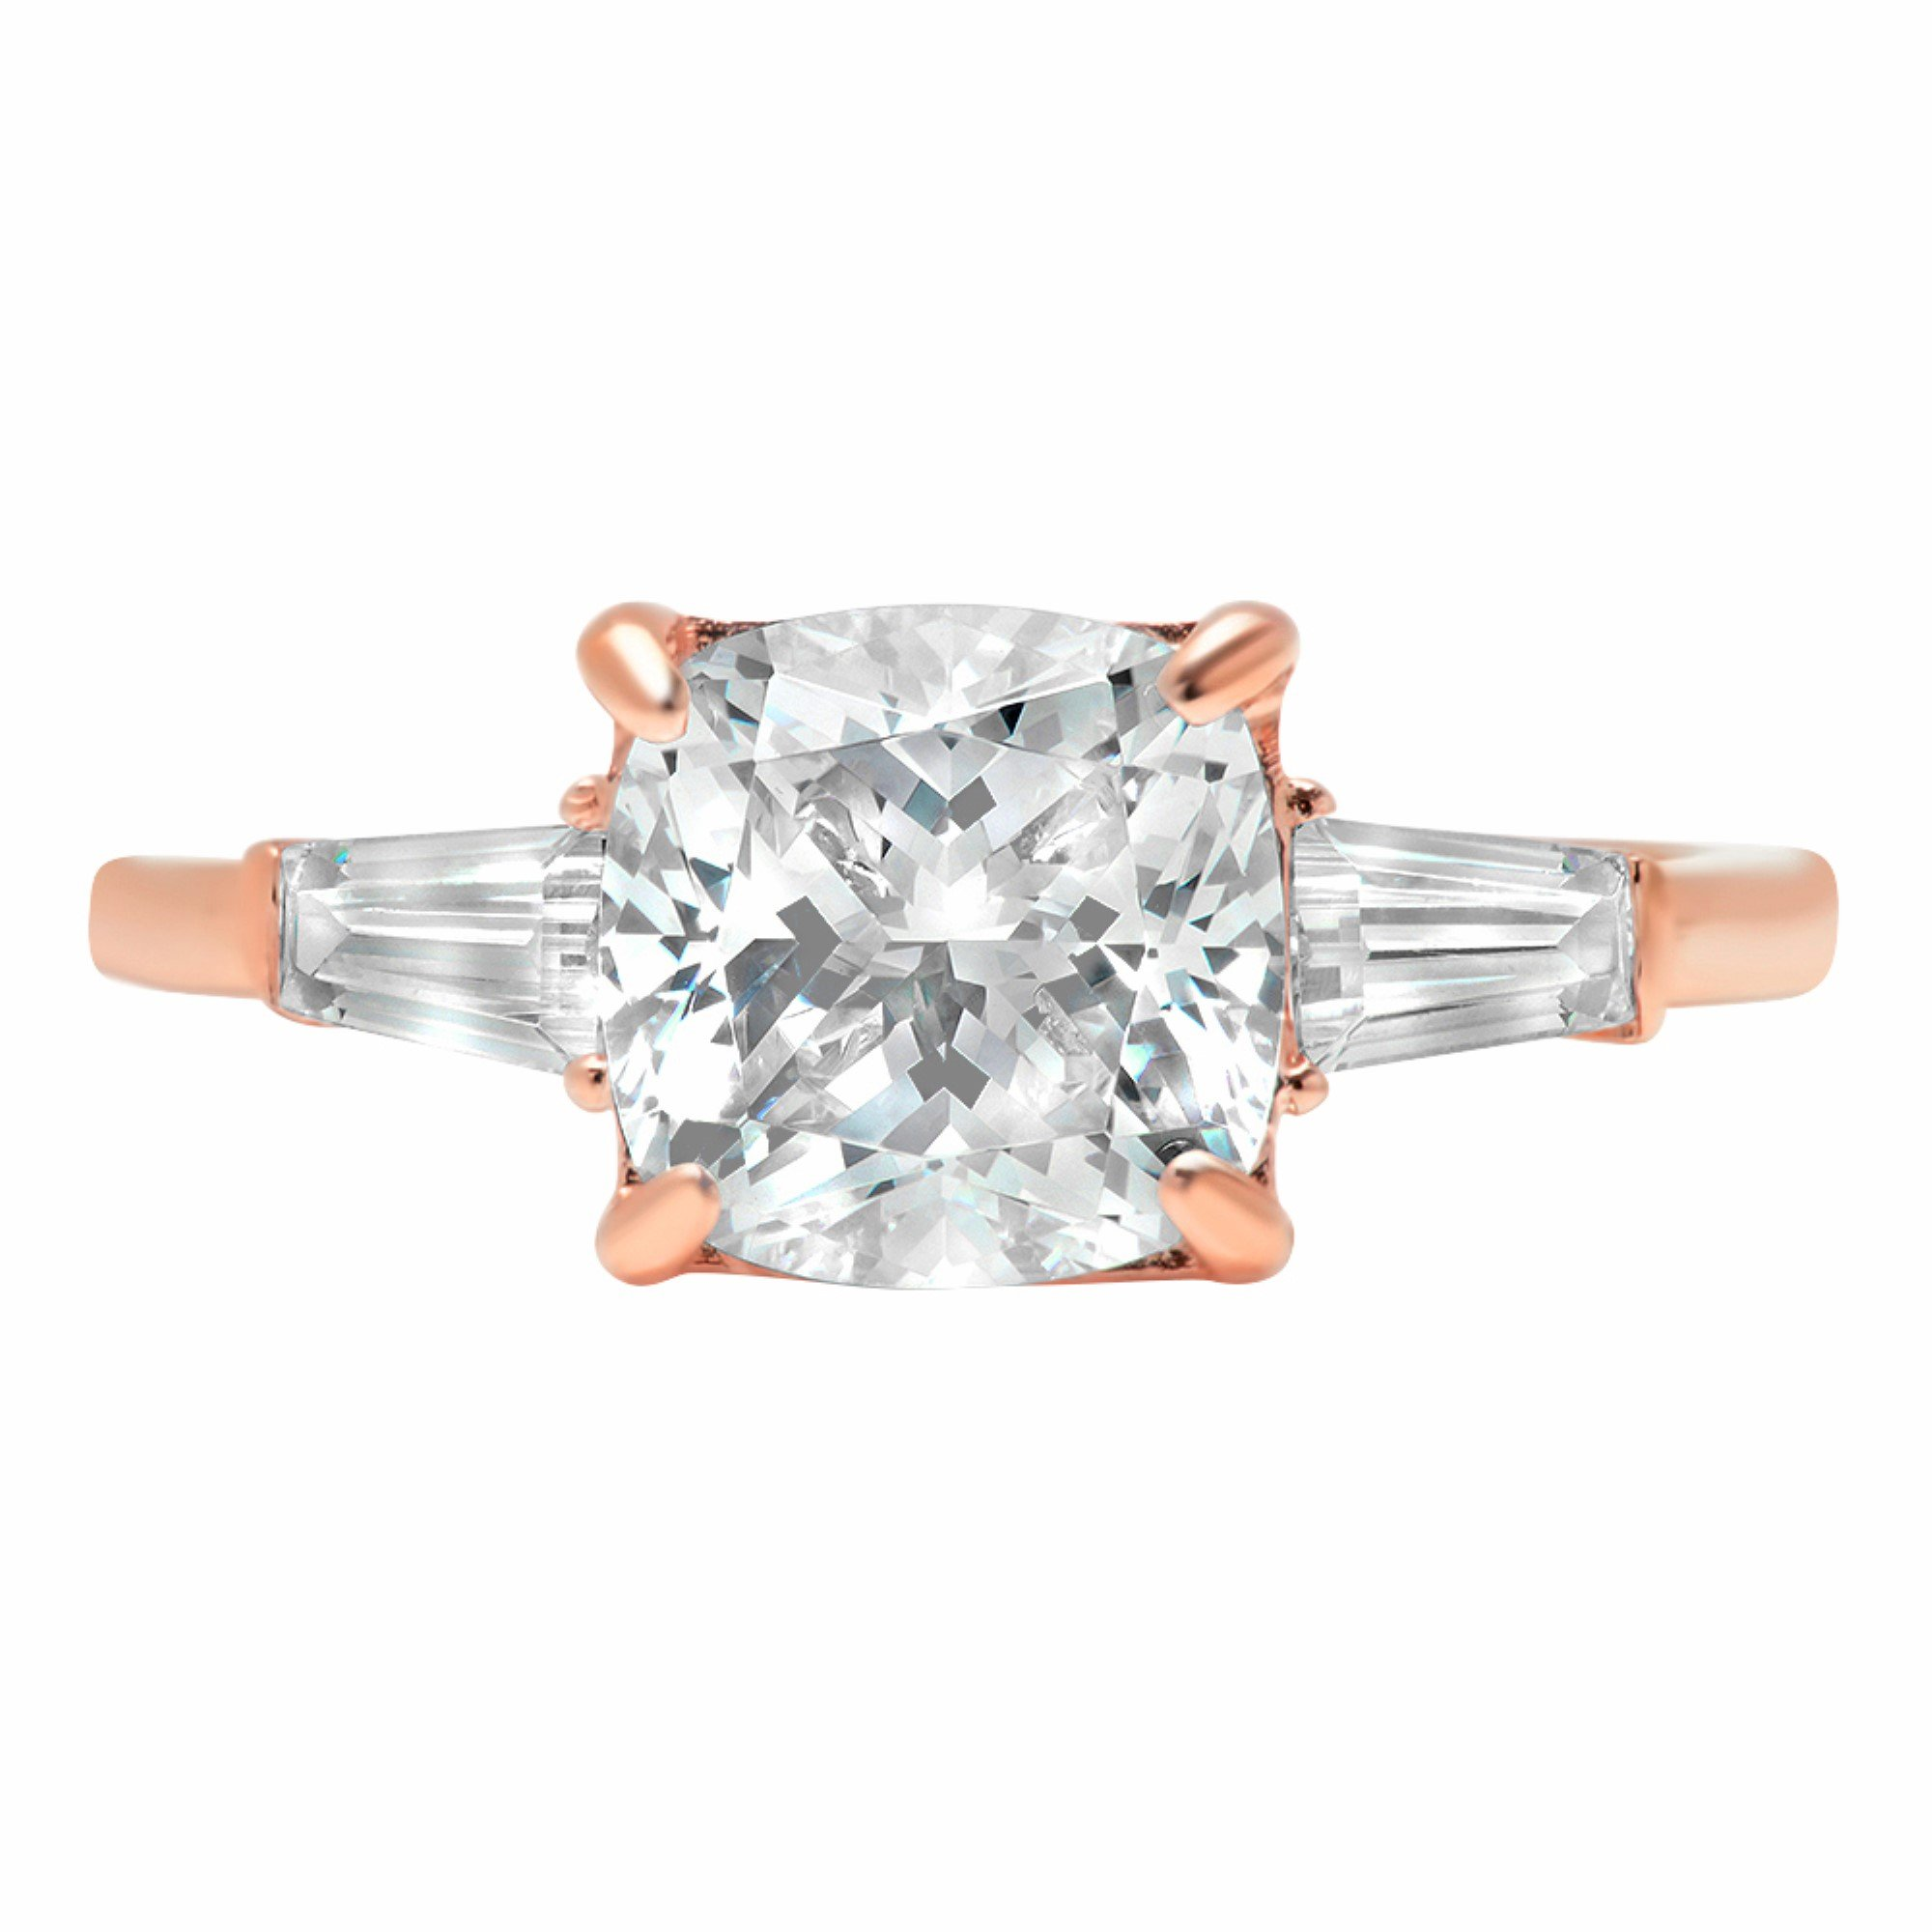 Radiant Baguette 3-Stone Classic Solitaire Designer Wedding Bridal Statement Anniversary Engagement Promise Ring 14k Rose Gold, 3.7ct, 4.75